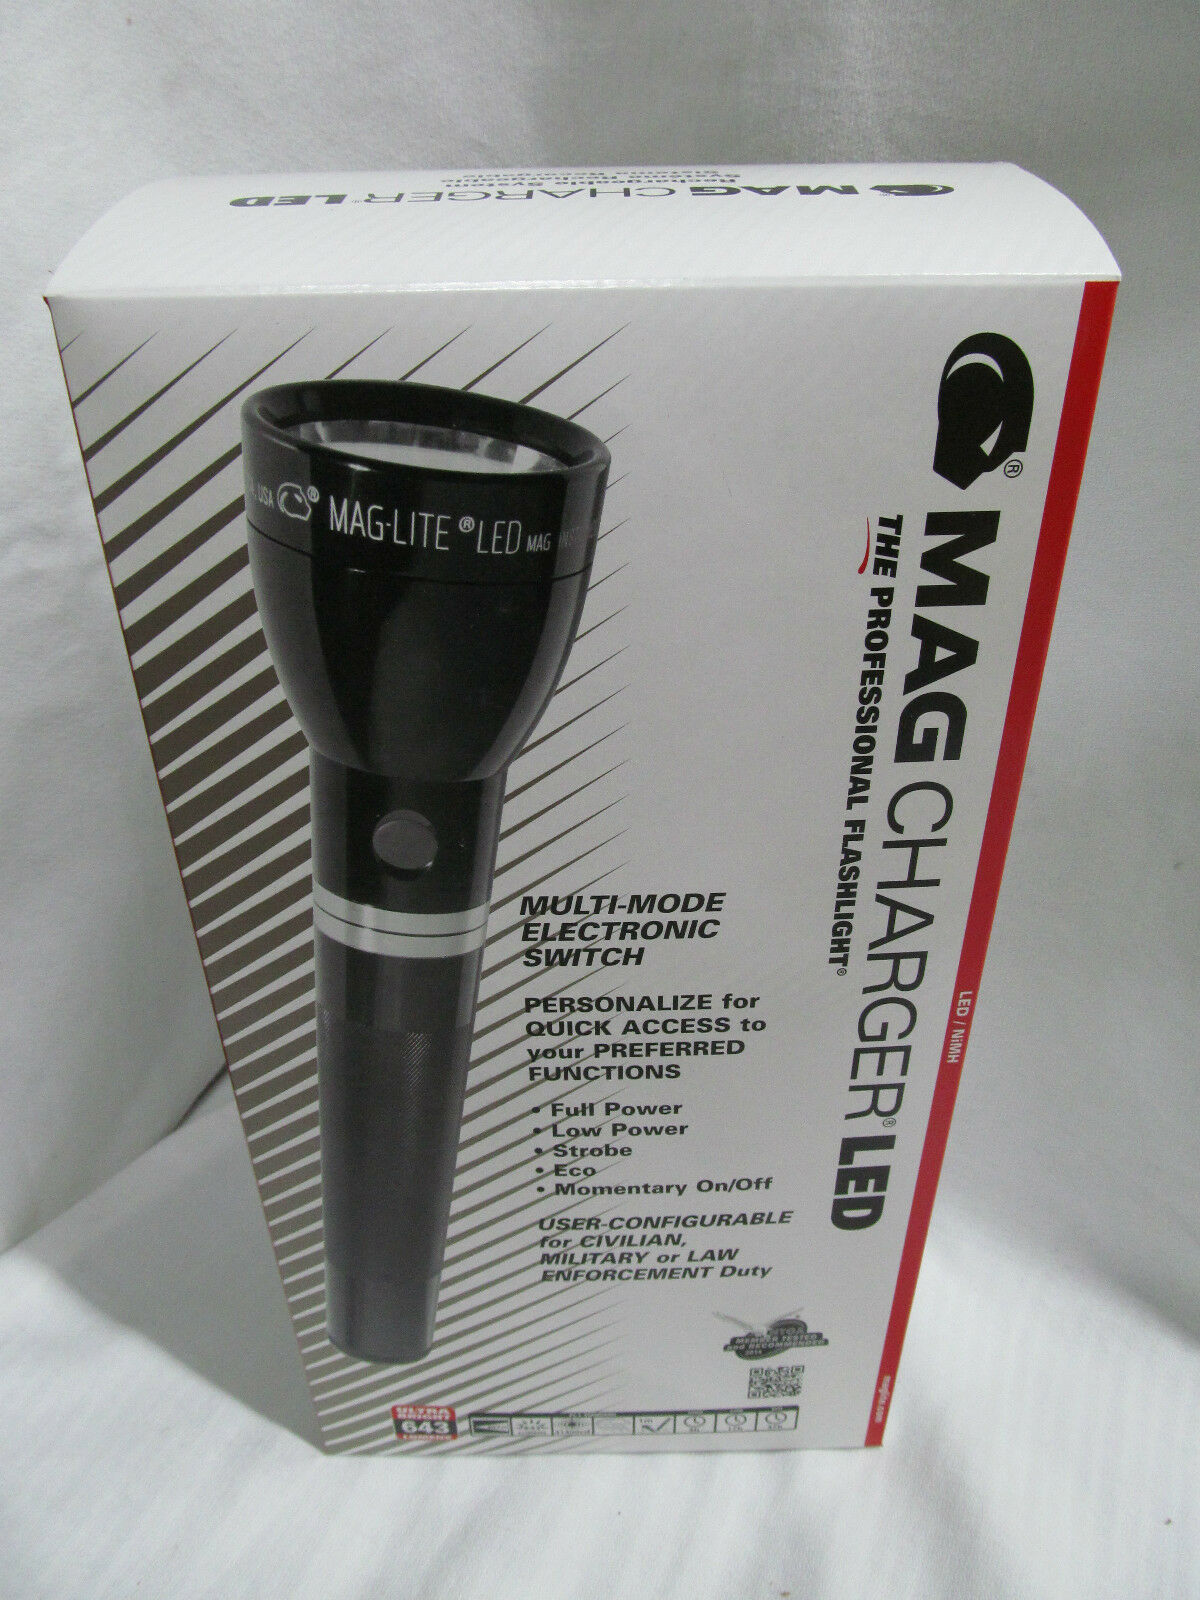 Maglite RL1019 MagCharger  LED Industrial Flashlight AC DC Rechargeable ZZ030504  save up to 30-50% off